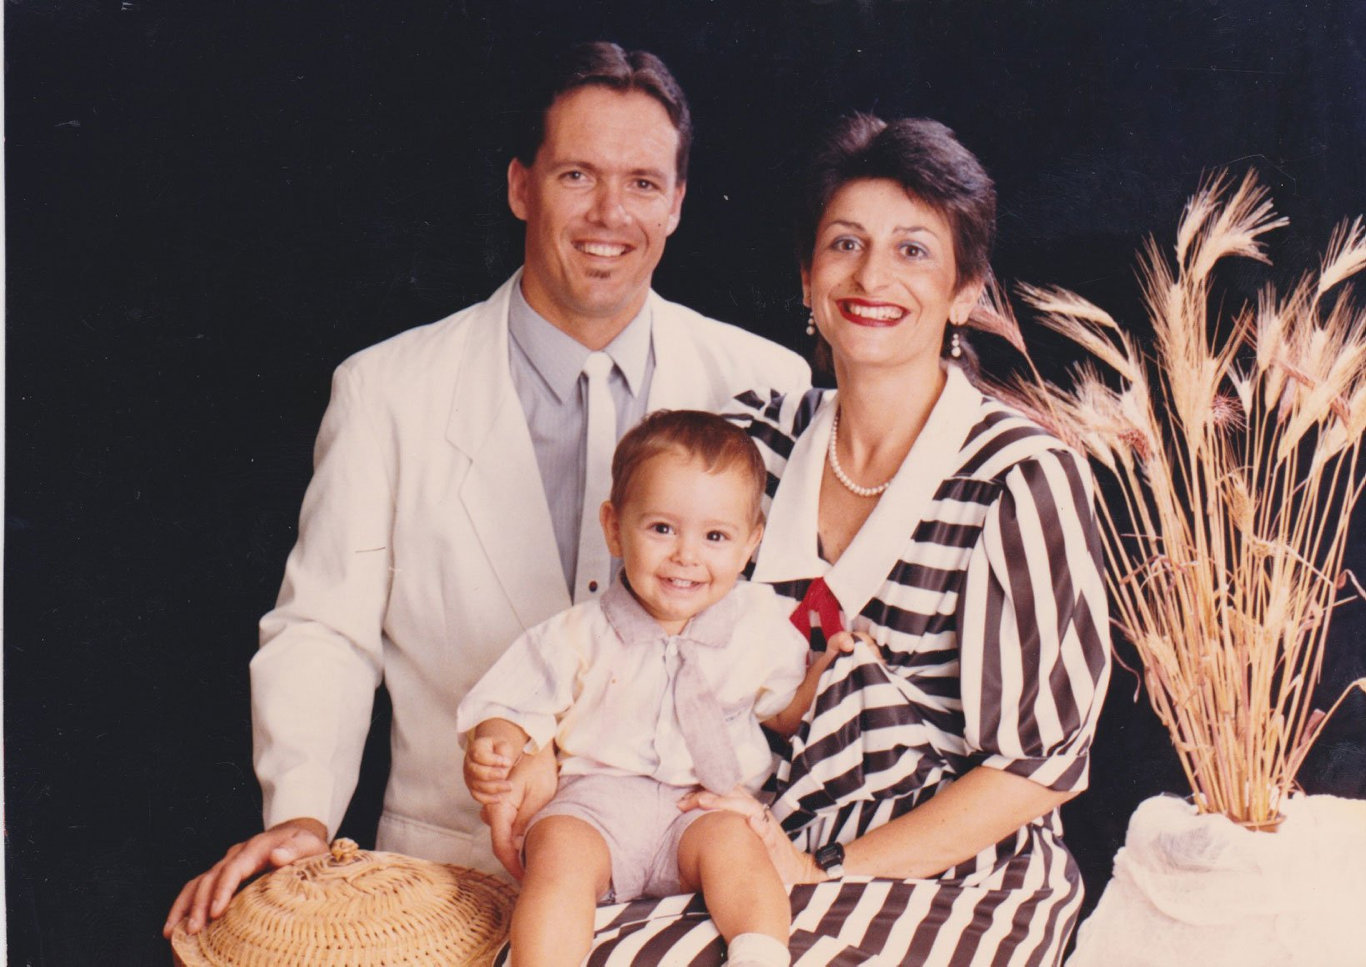 Stephen and Angie Nichol went to Thailand as a young family to become missionaries.